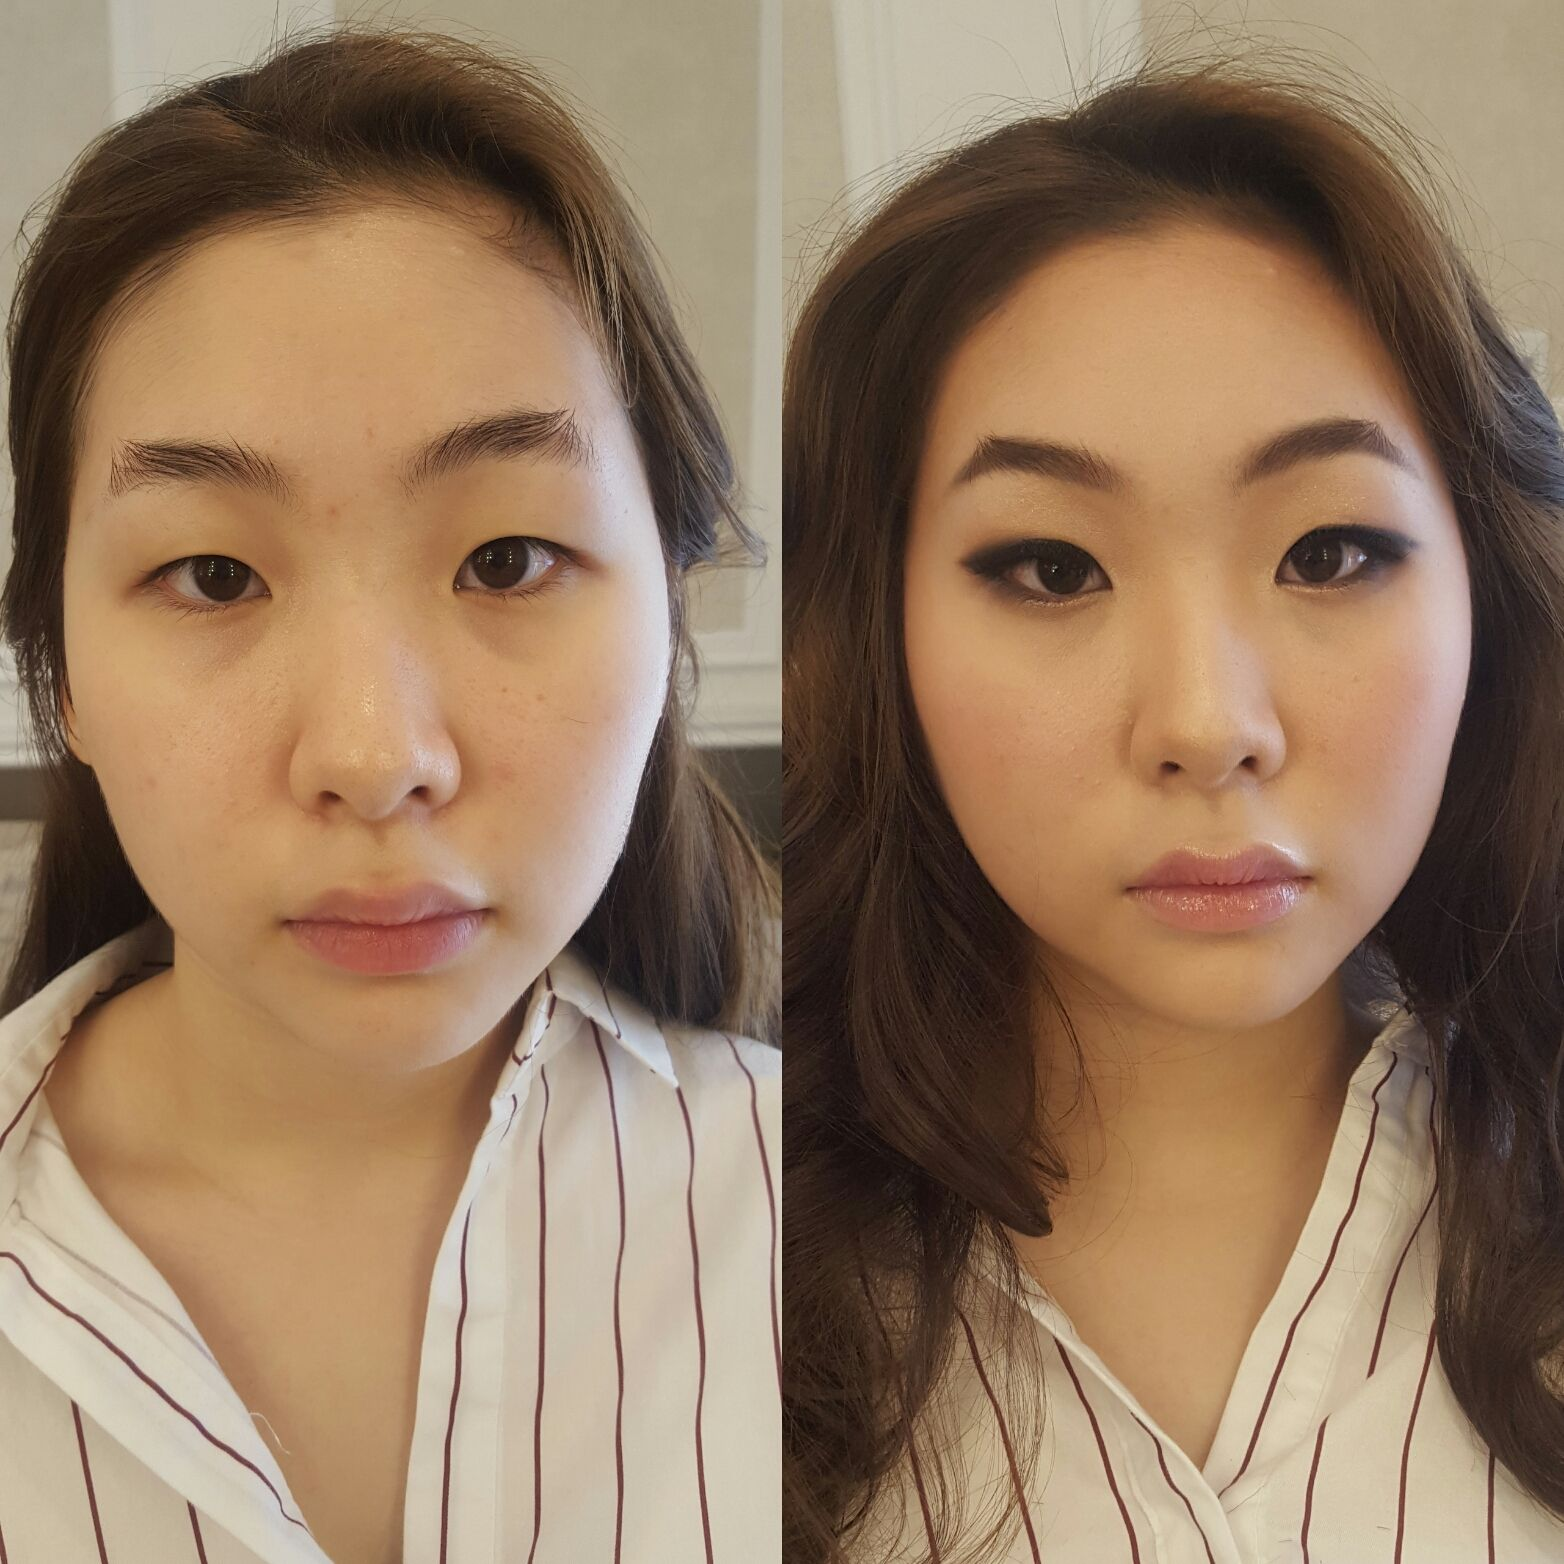 Korean style makeup and hair for prom by DS Veronica Cho